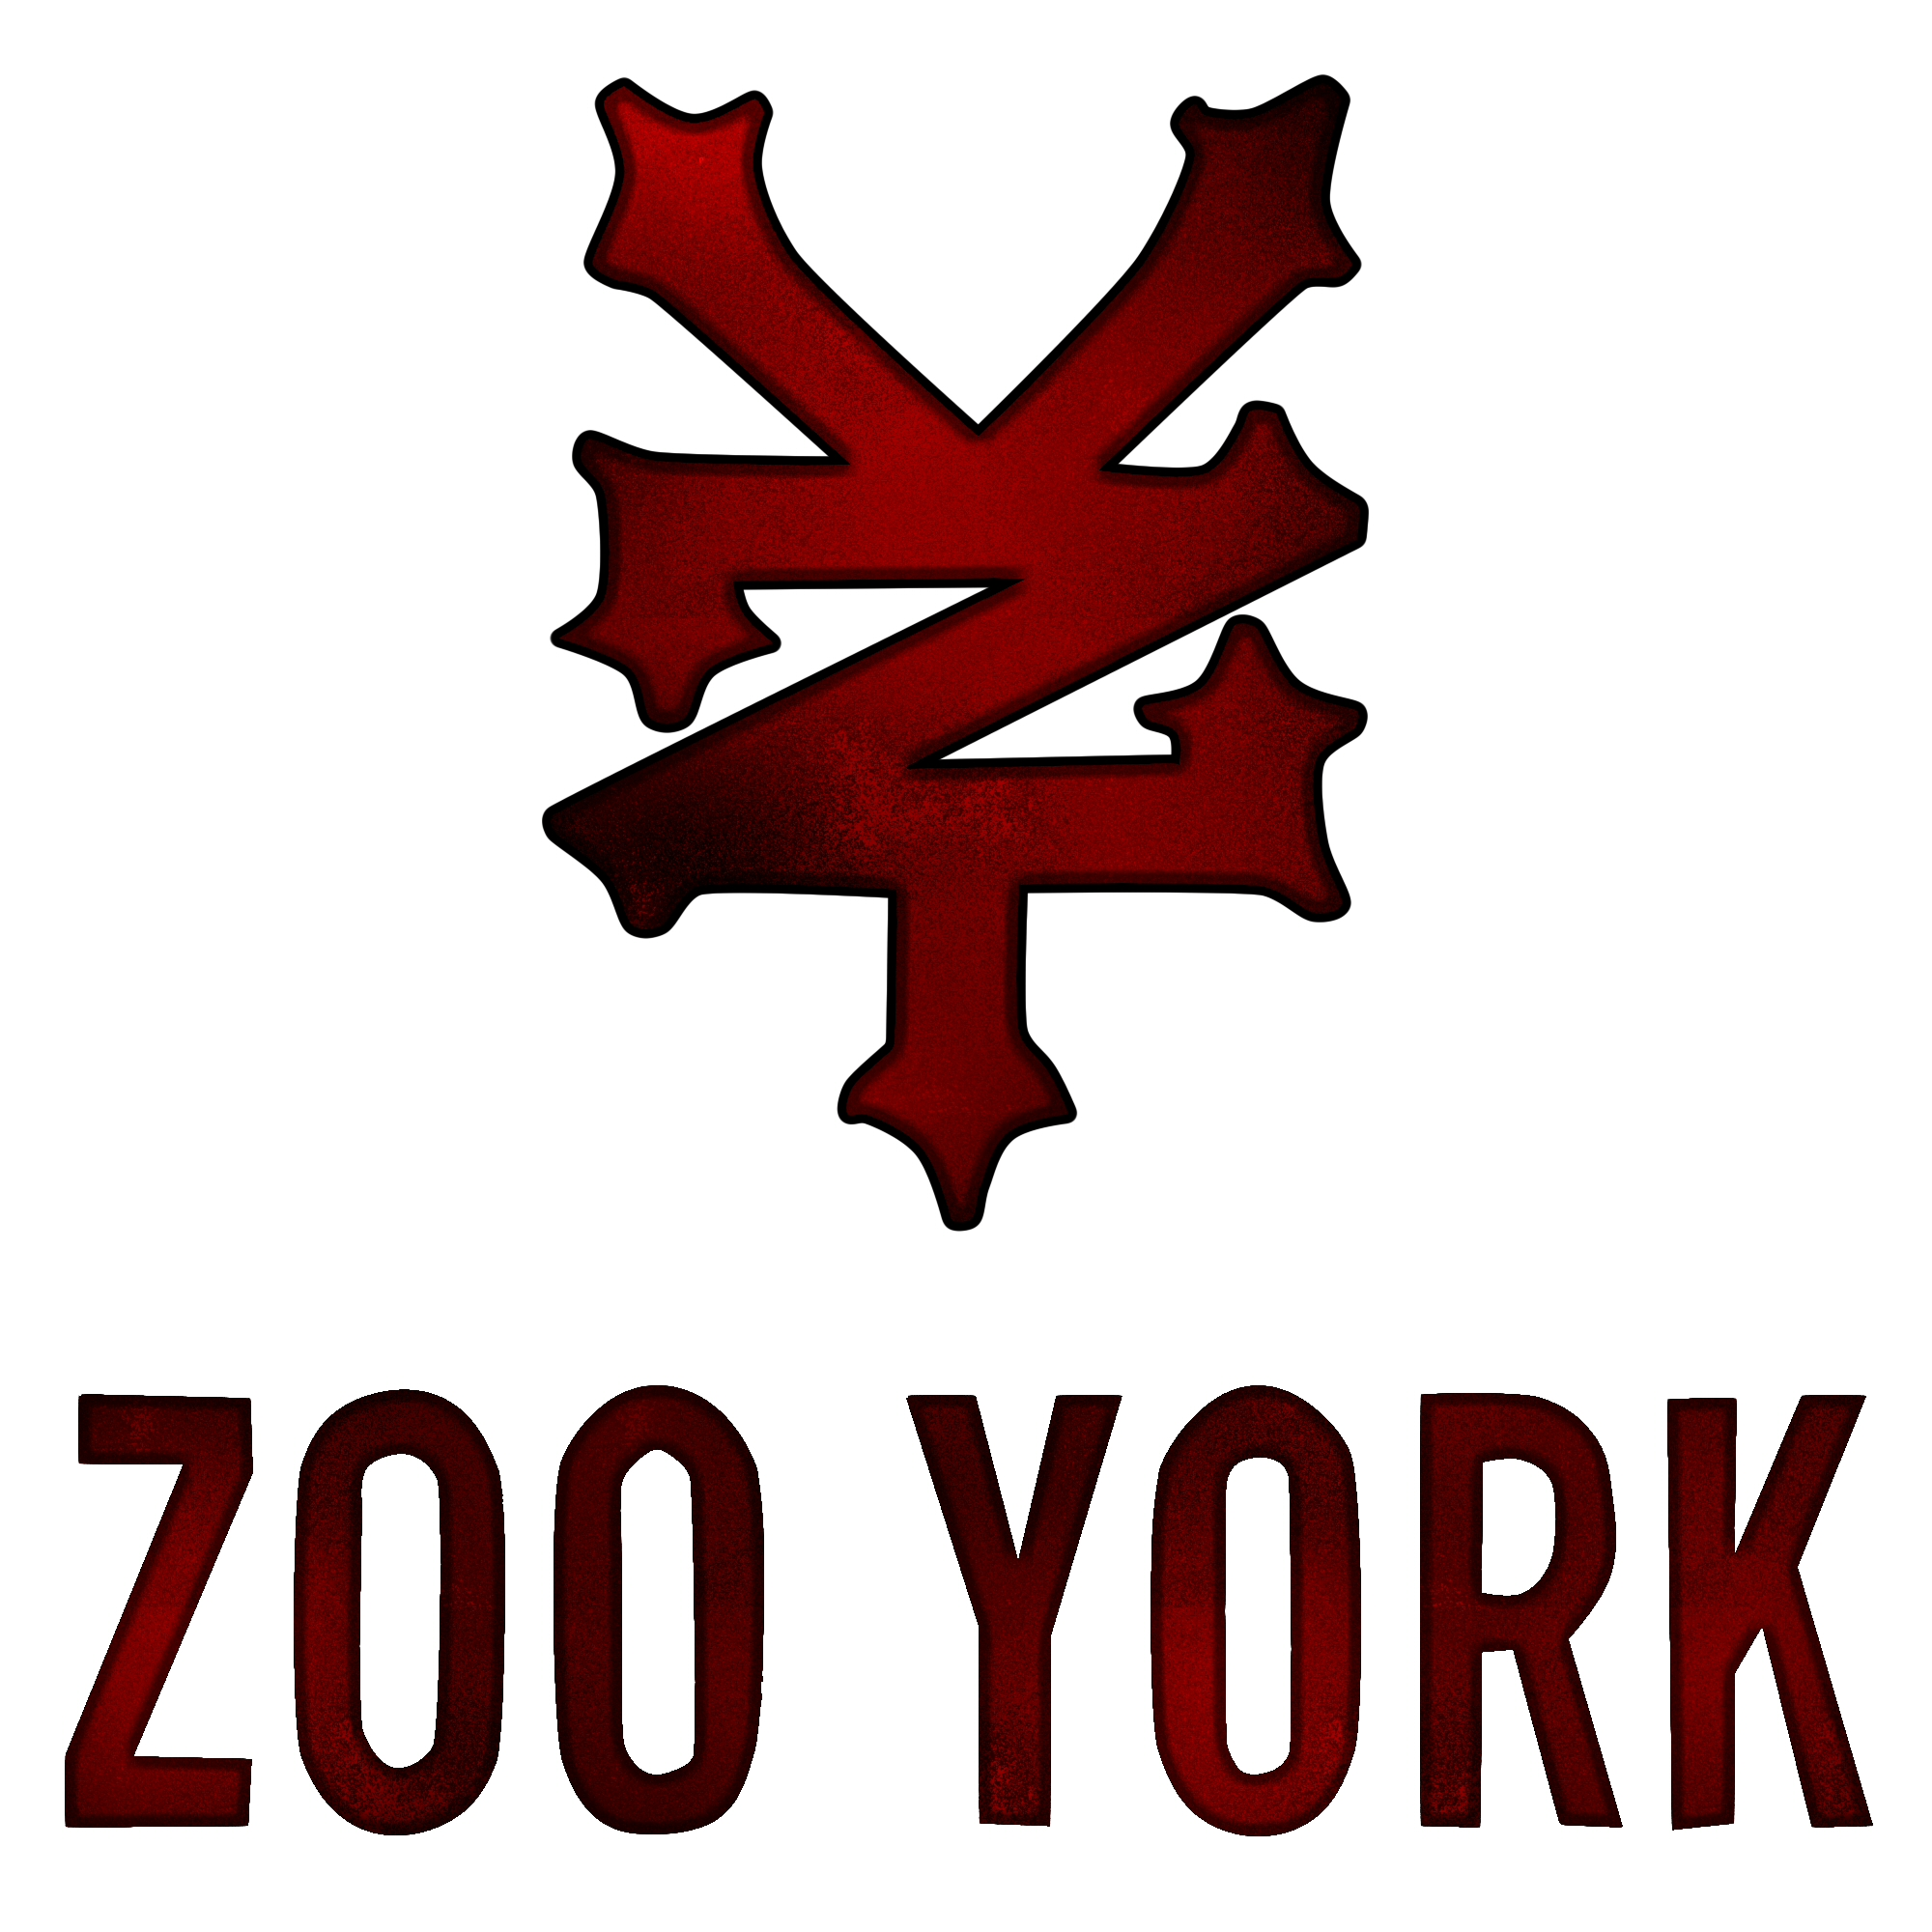 zoo york logo red ediction by pronalddinho on deviantart